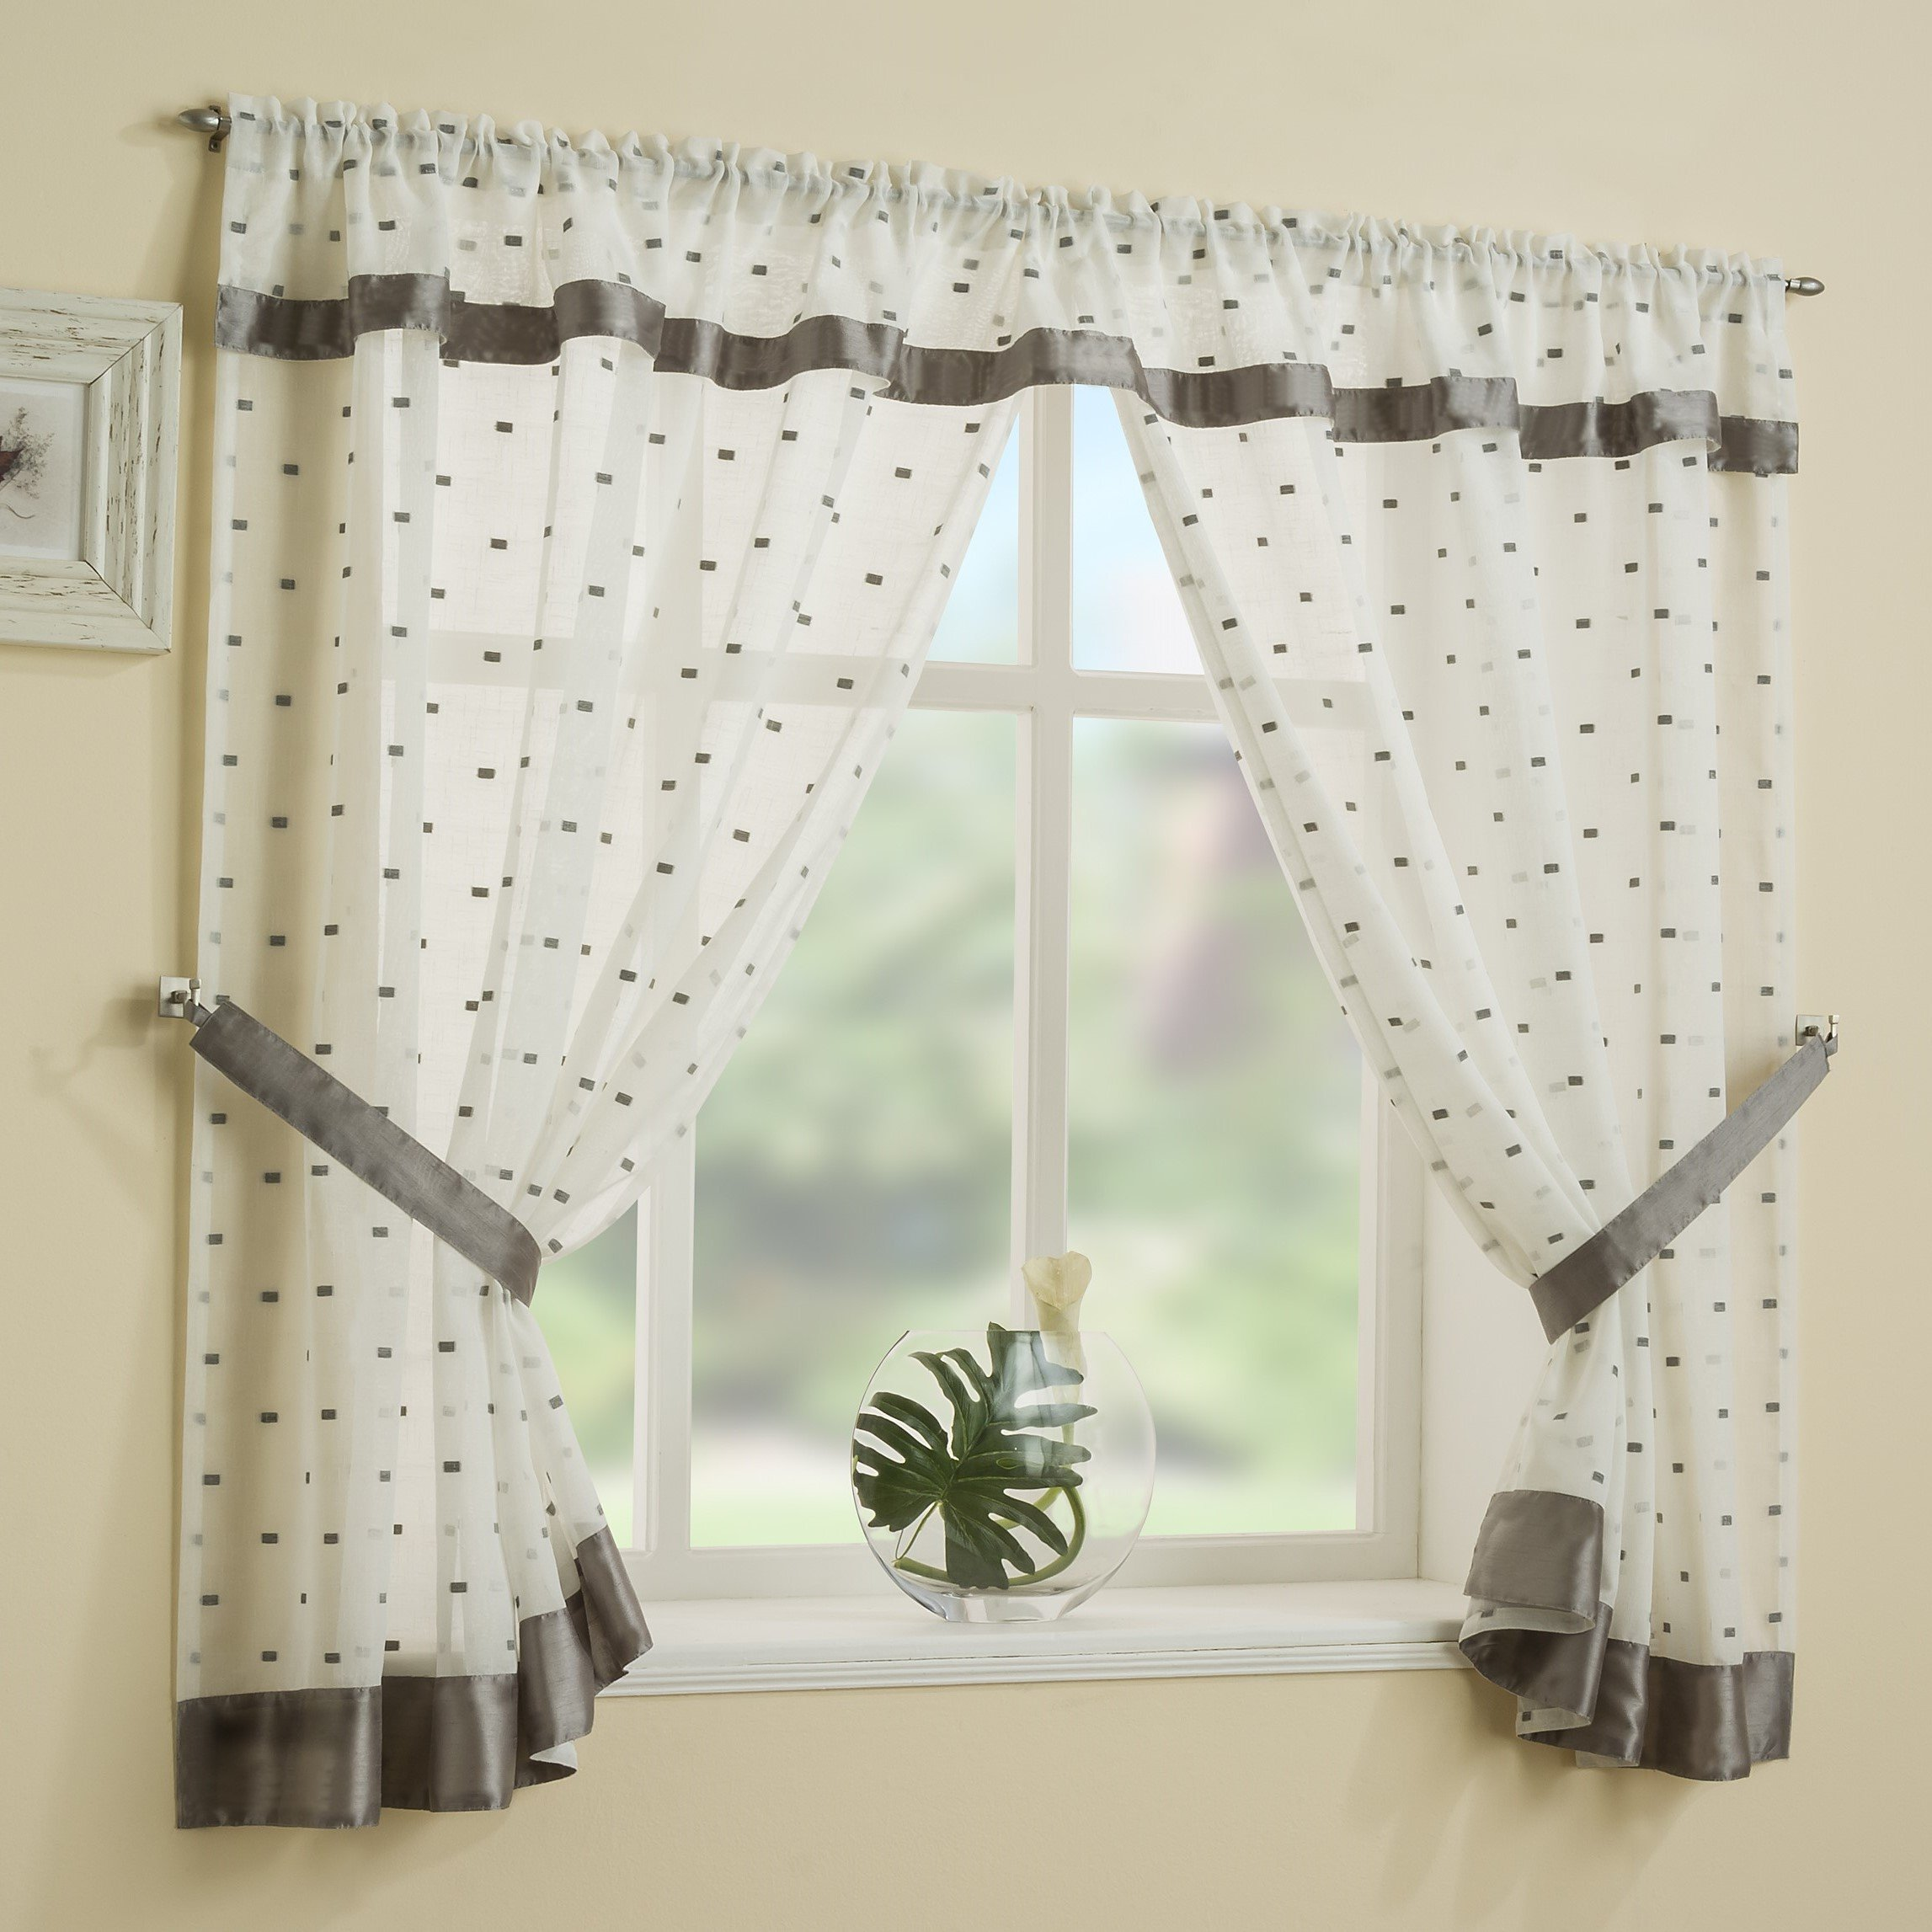 Beau Silver Grey Linen Look Window Set Bathroom Kitchen Curtains Squares Off  White 53x48 Inches Drop 135cm